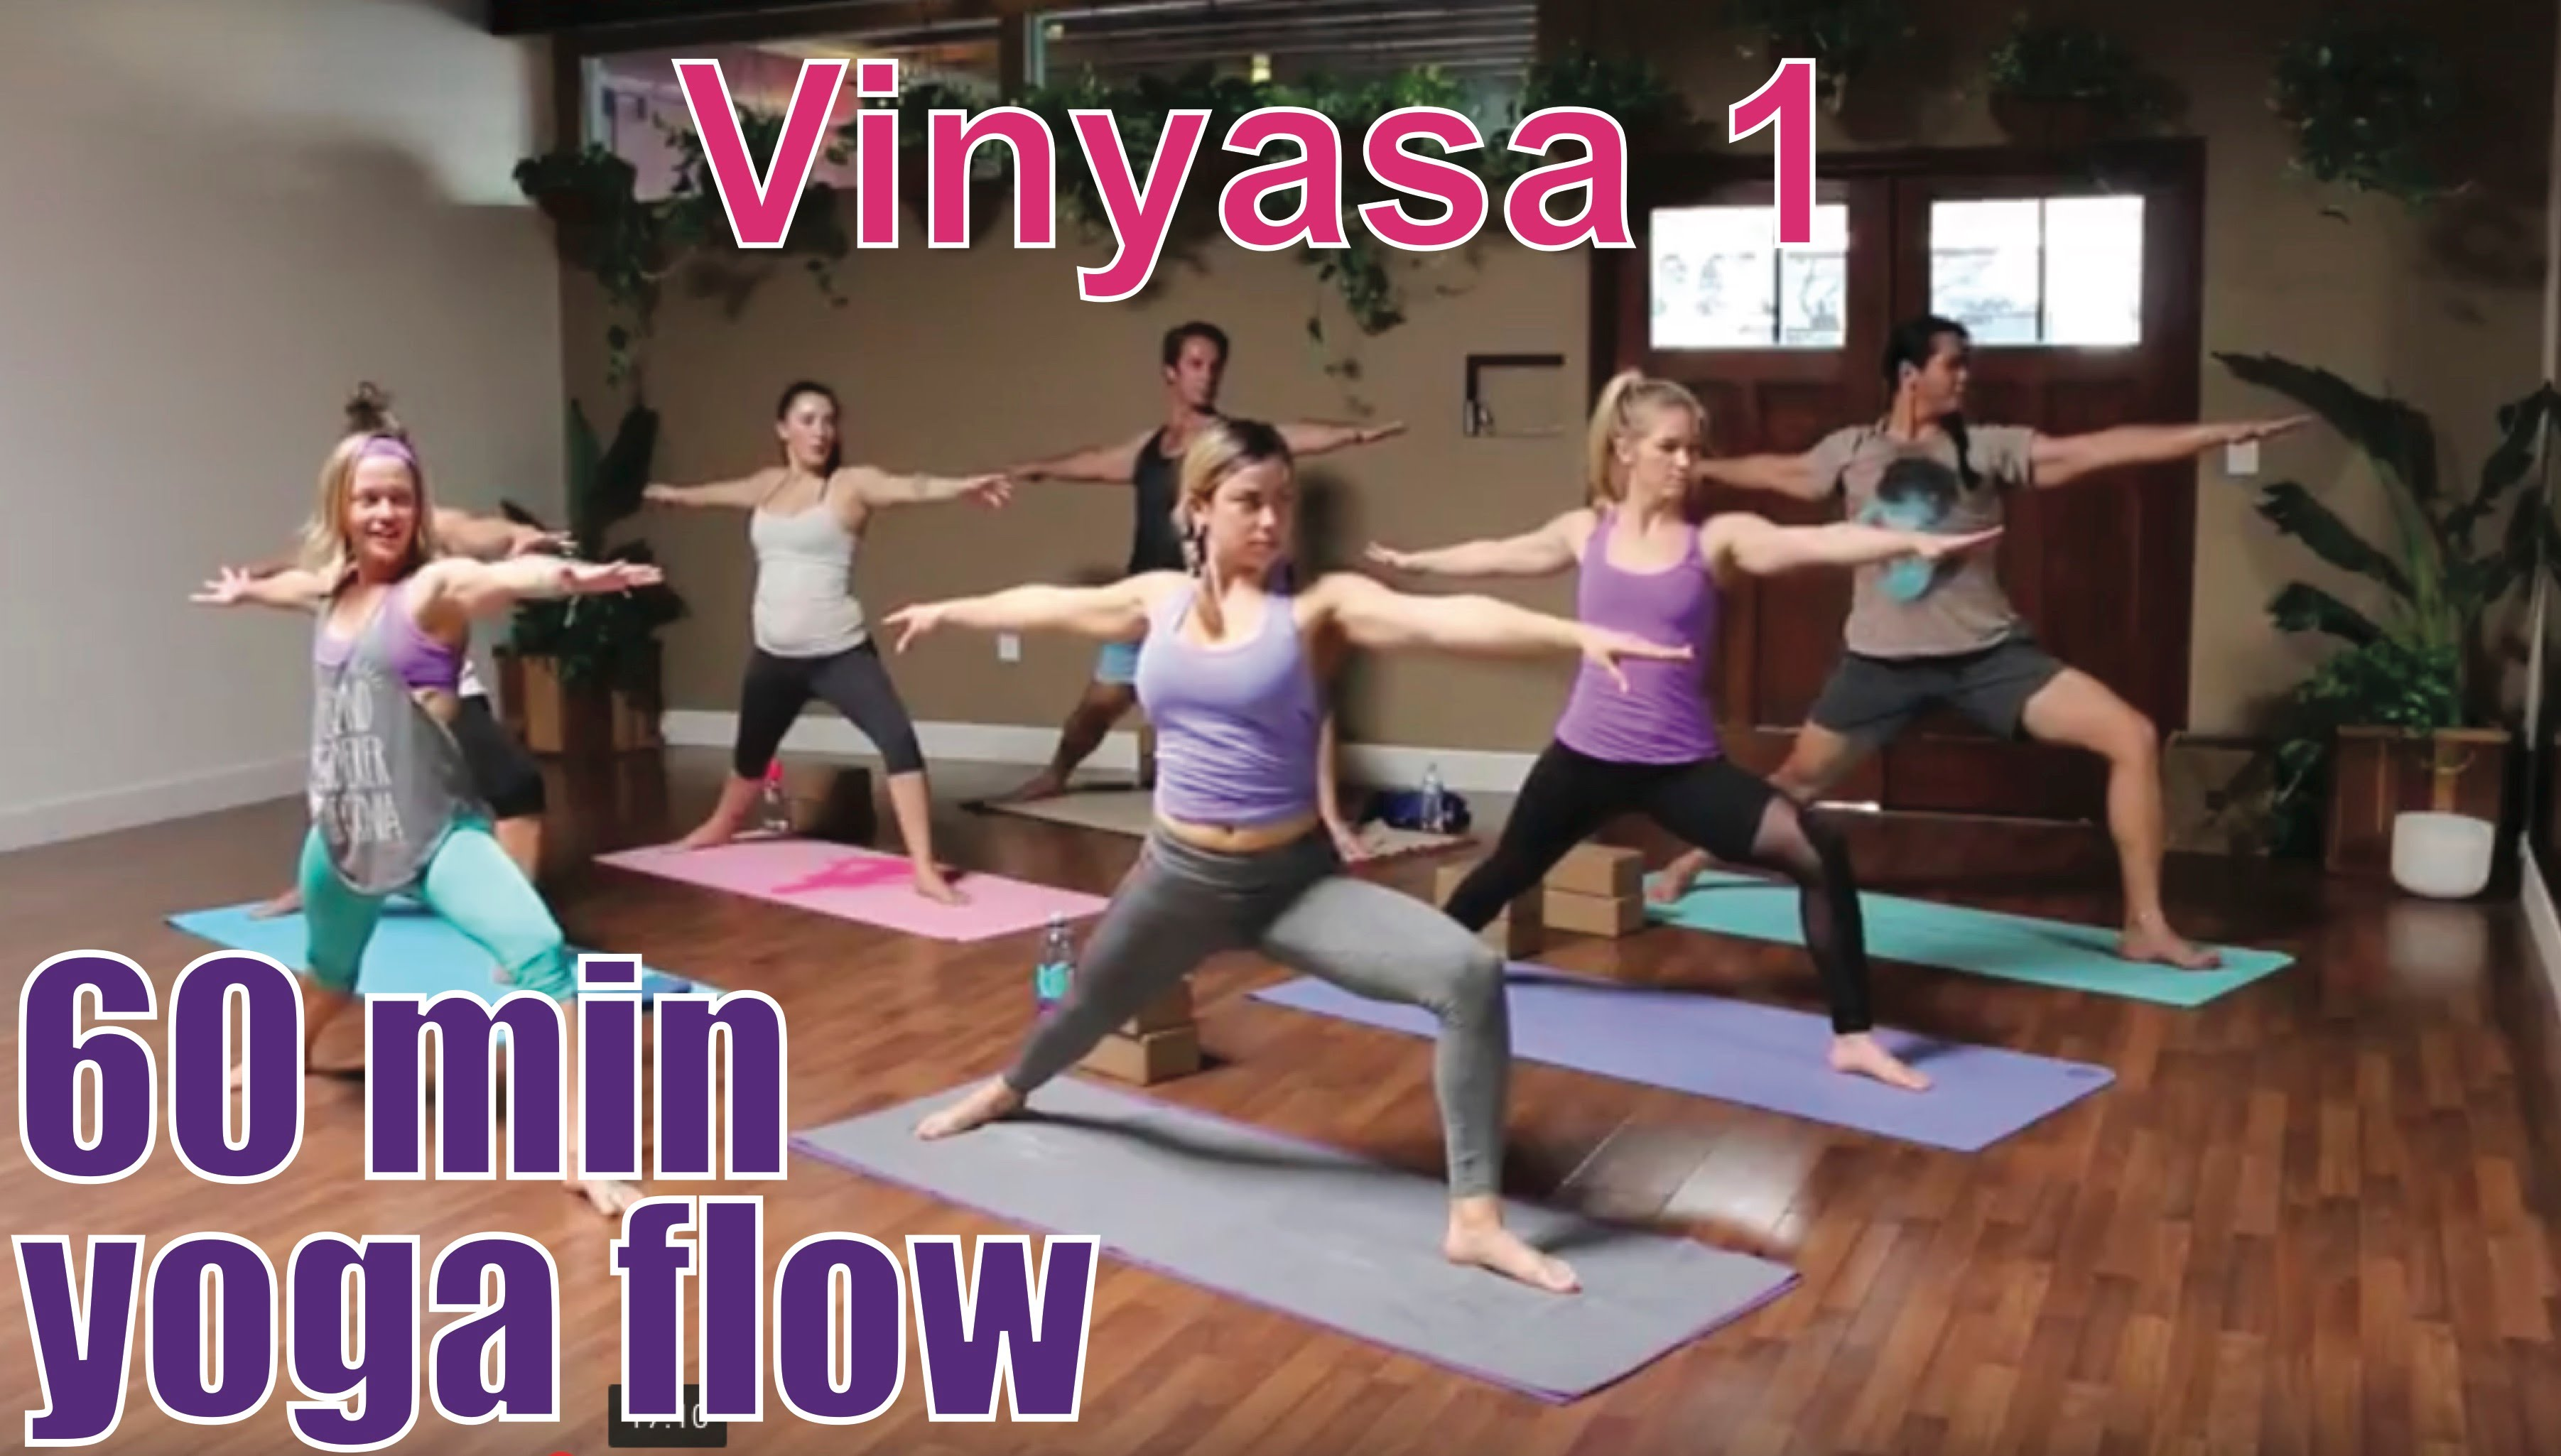 Yoga Poses 60 Minute Yoga Class Vinyasa 1 Beginner Flow About Yoga Blog Home Of Yoga The Zen Way Of Teaching Yoga Online